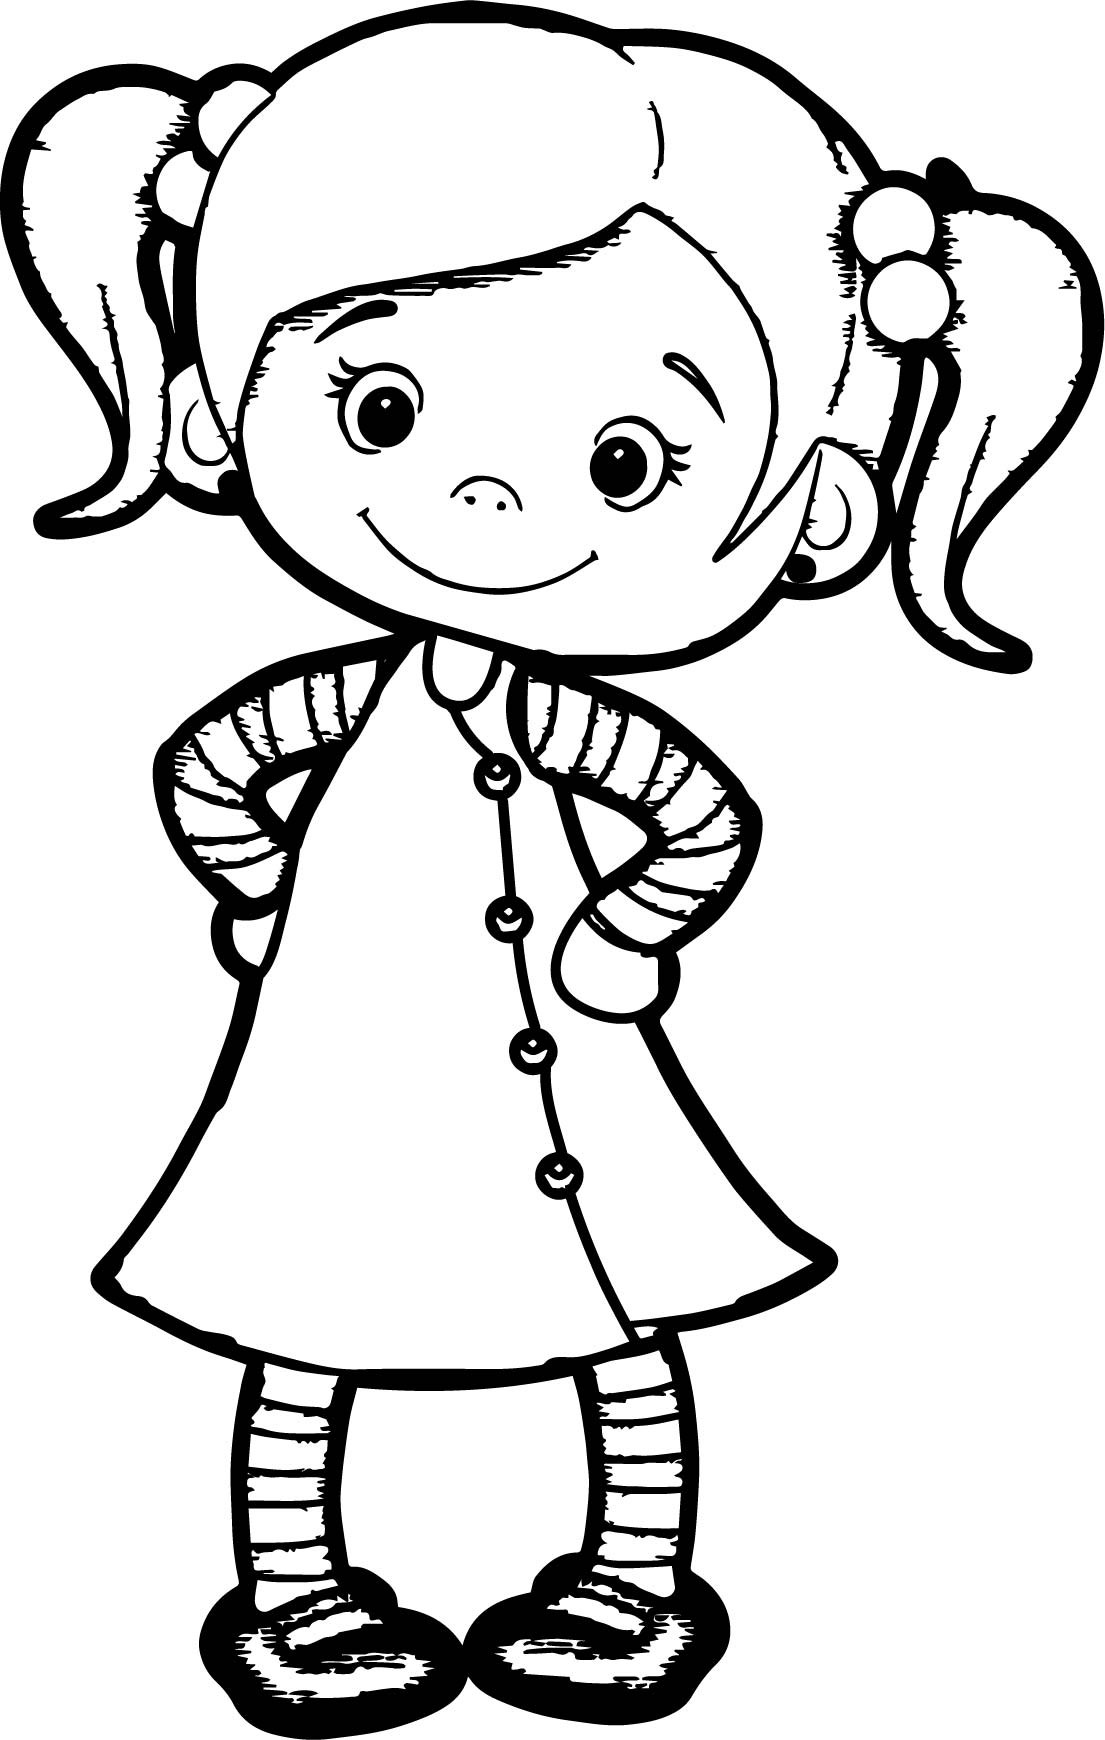 girls coloring pages free coloring pages for girls at getdrawings free download coloring pages girls